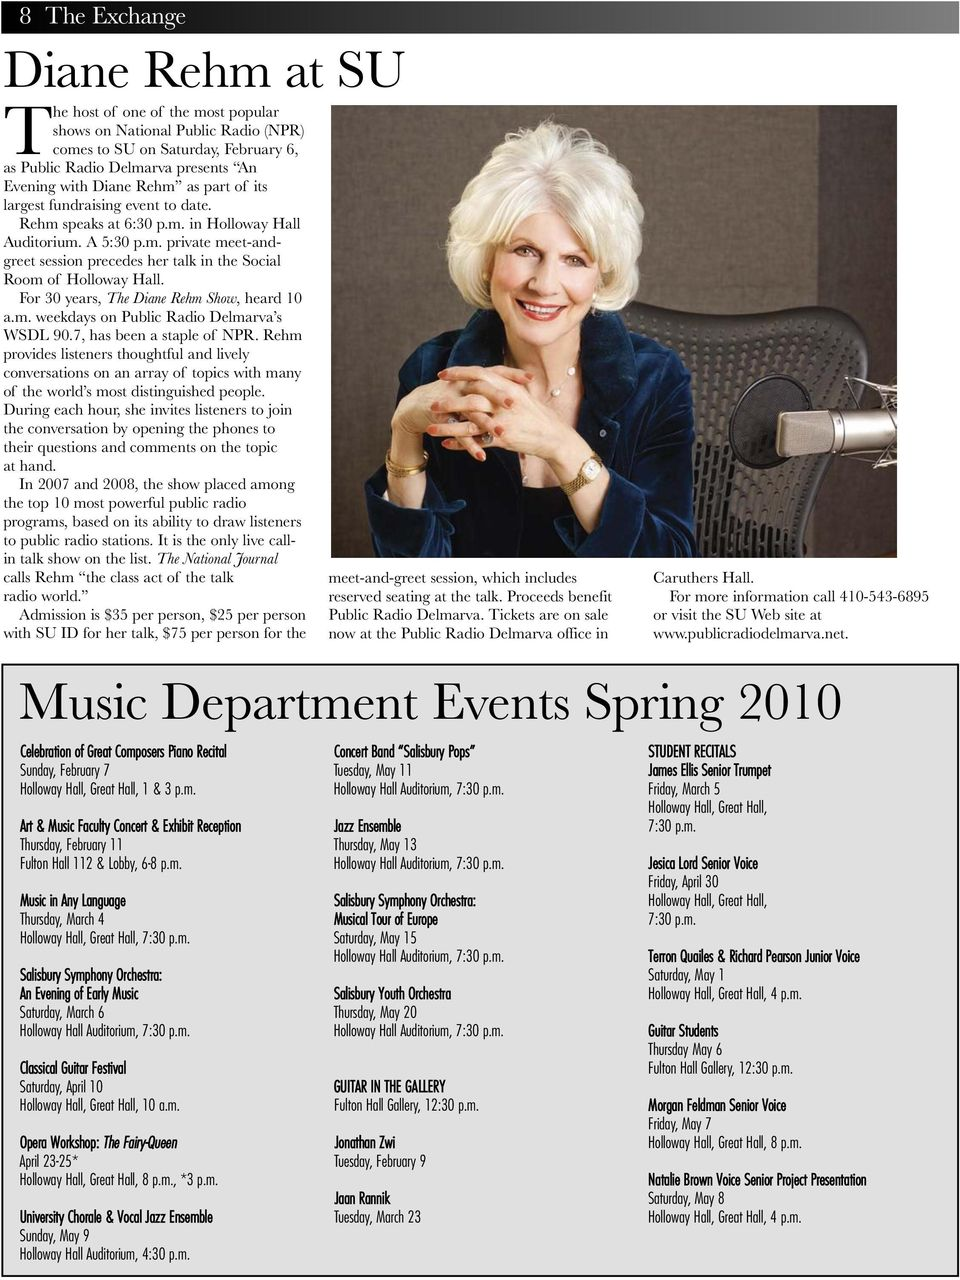 For 30 years, The Diane Rehm Show, heard 10 a.m. weekdays on Public Radio Delmarva s WSDL 90.7, has been a staple of NPR.